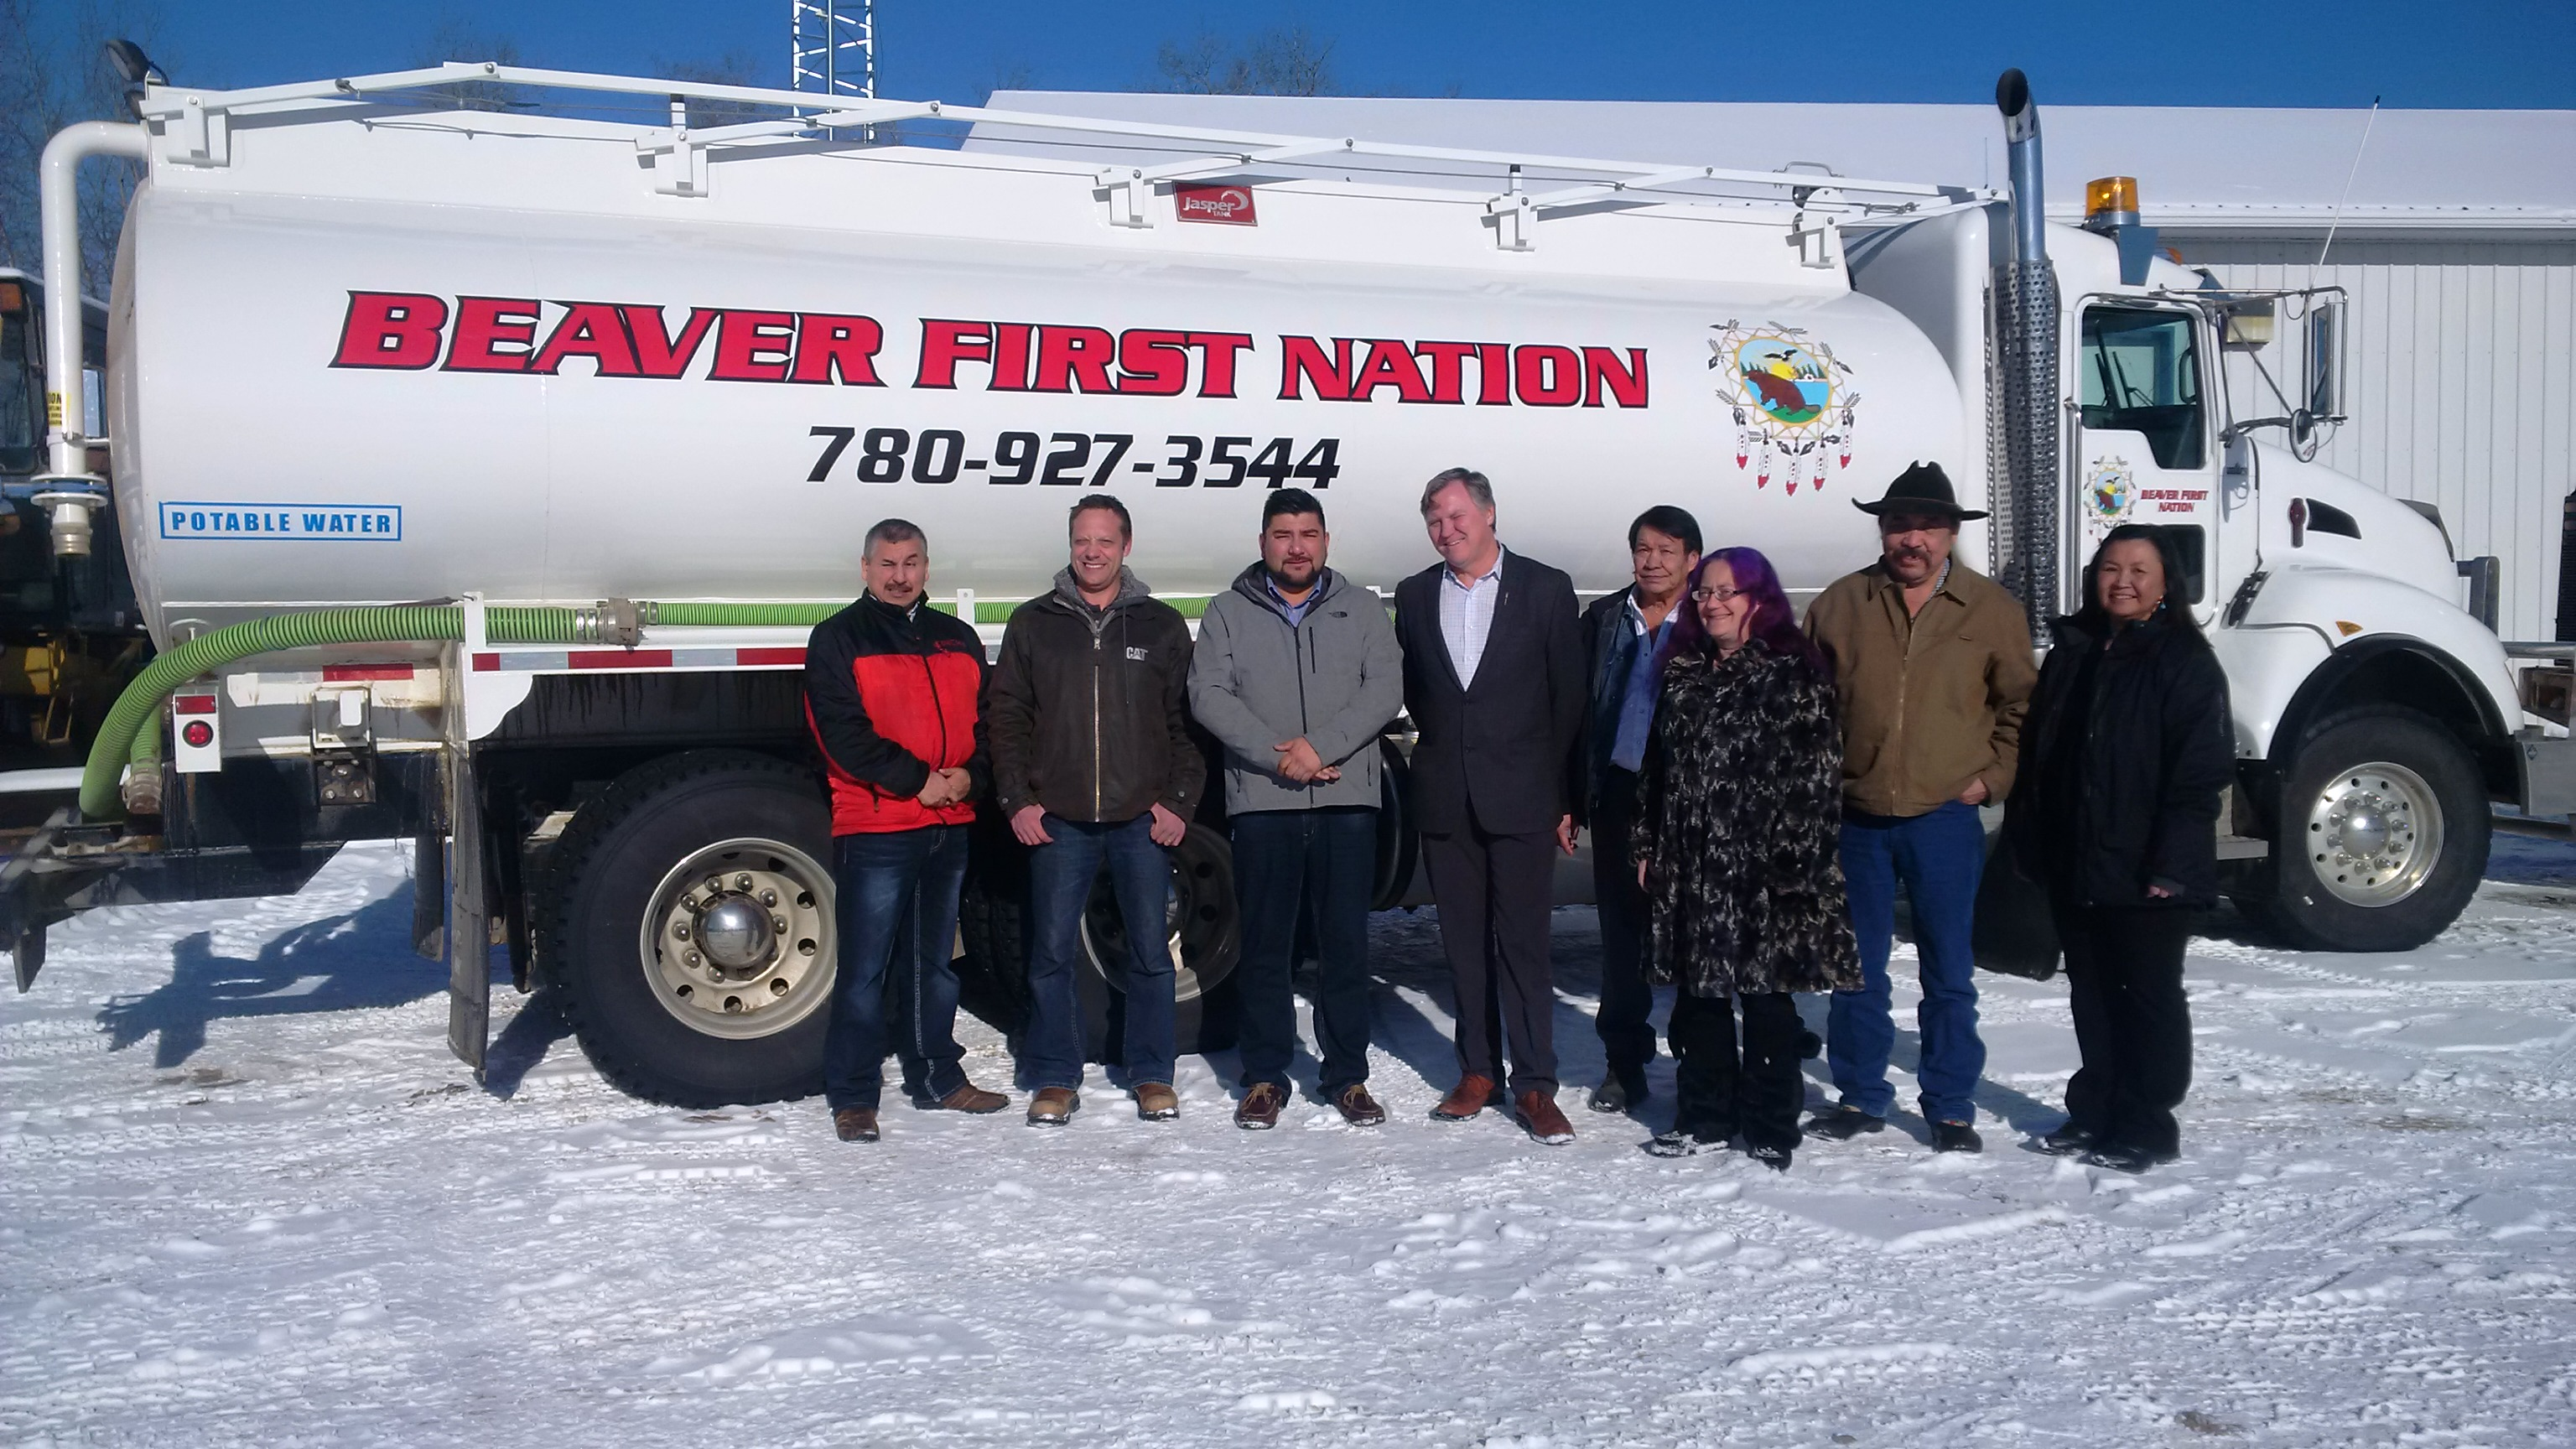 Government supports Beaver First Nation's business